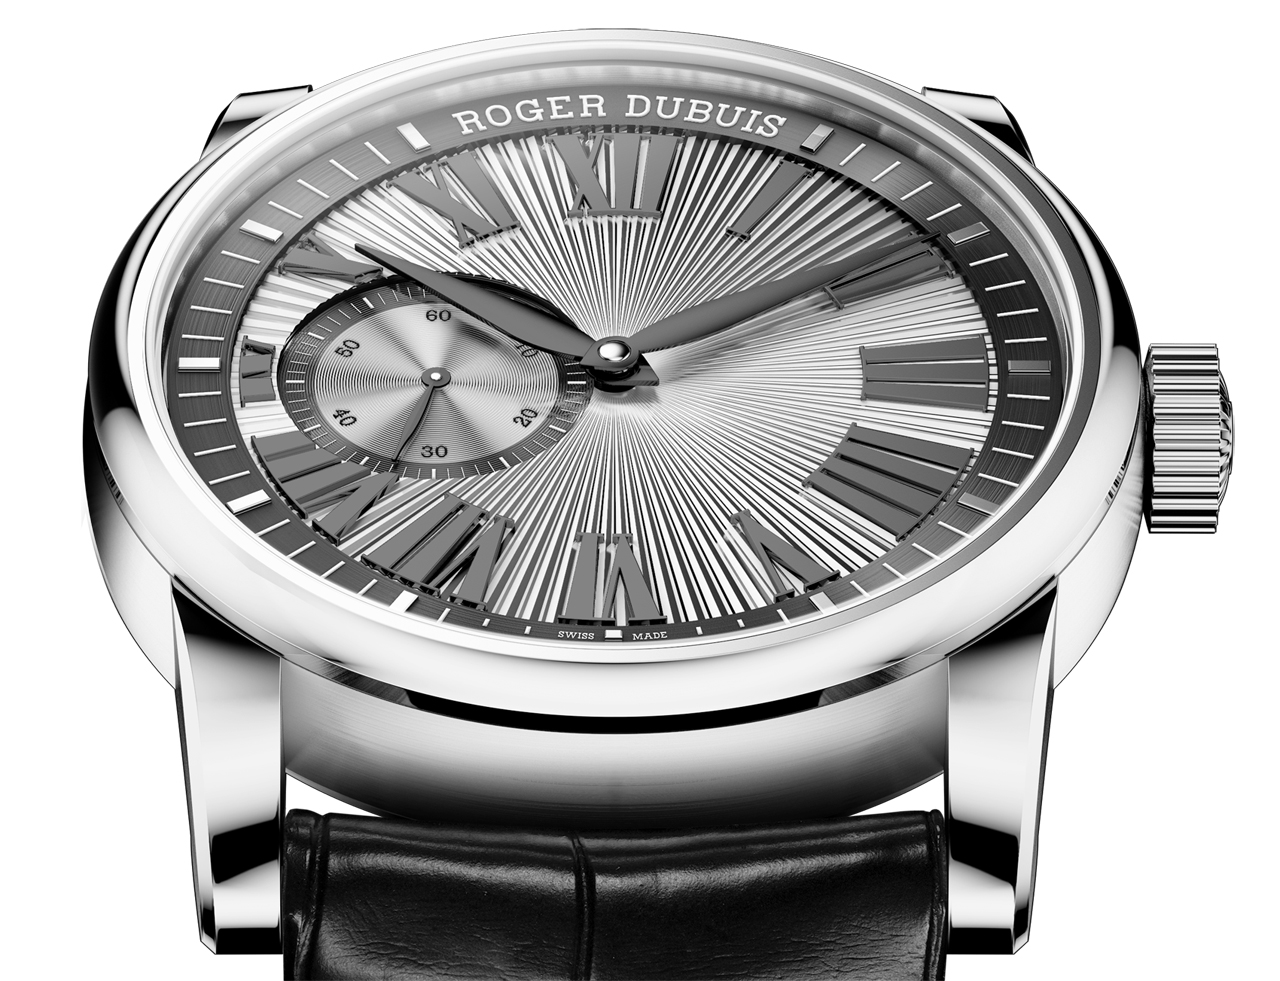 RDDBHO0564 Roger Dubuis Hommage Collection